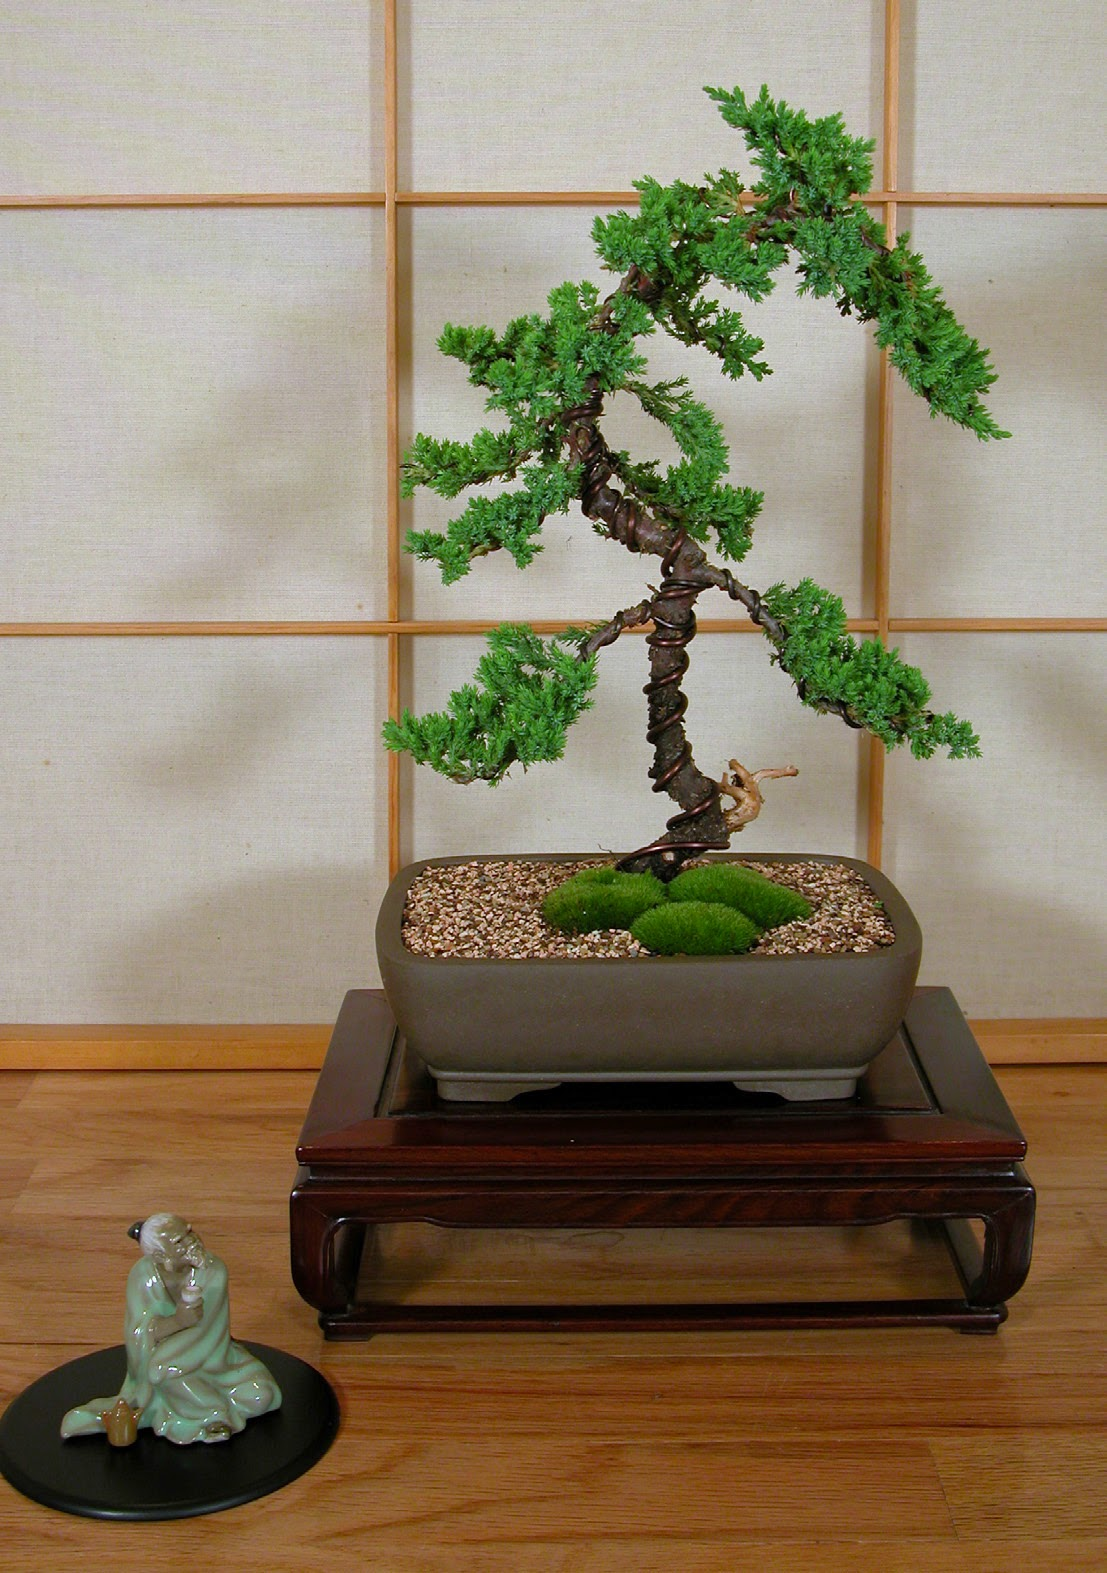 Bonsai Tree Beginner Basics Creating A Bonsai For The First Time